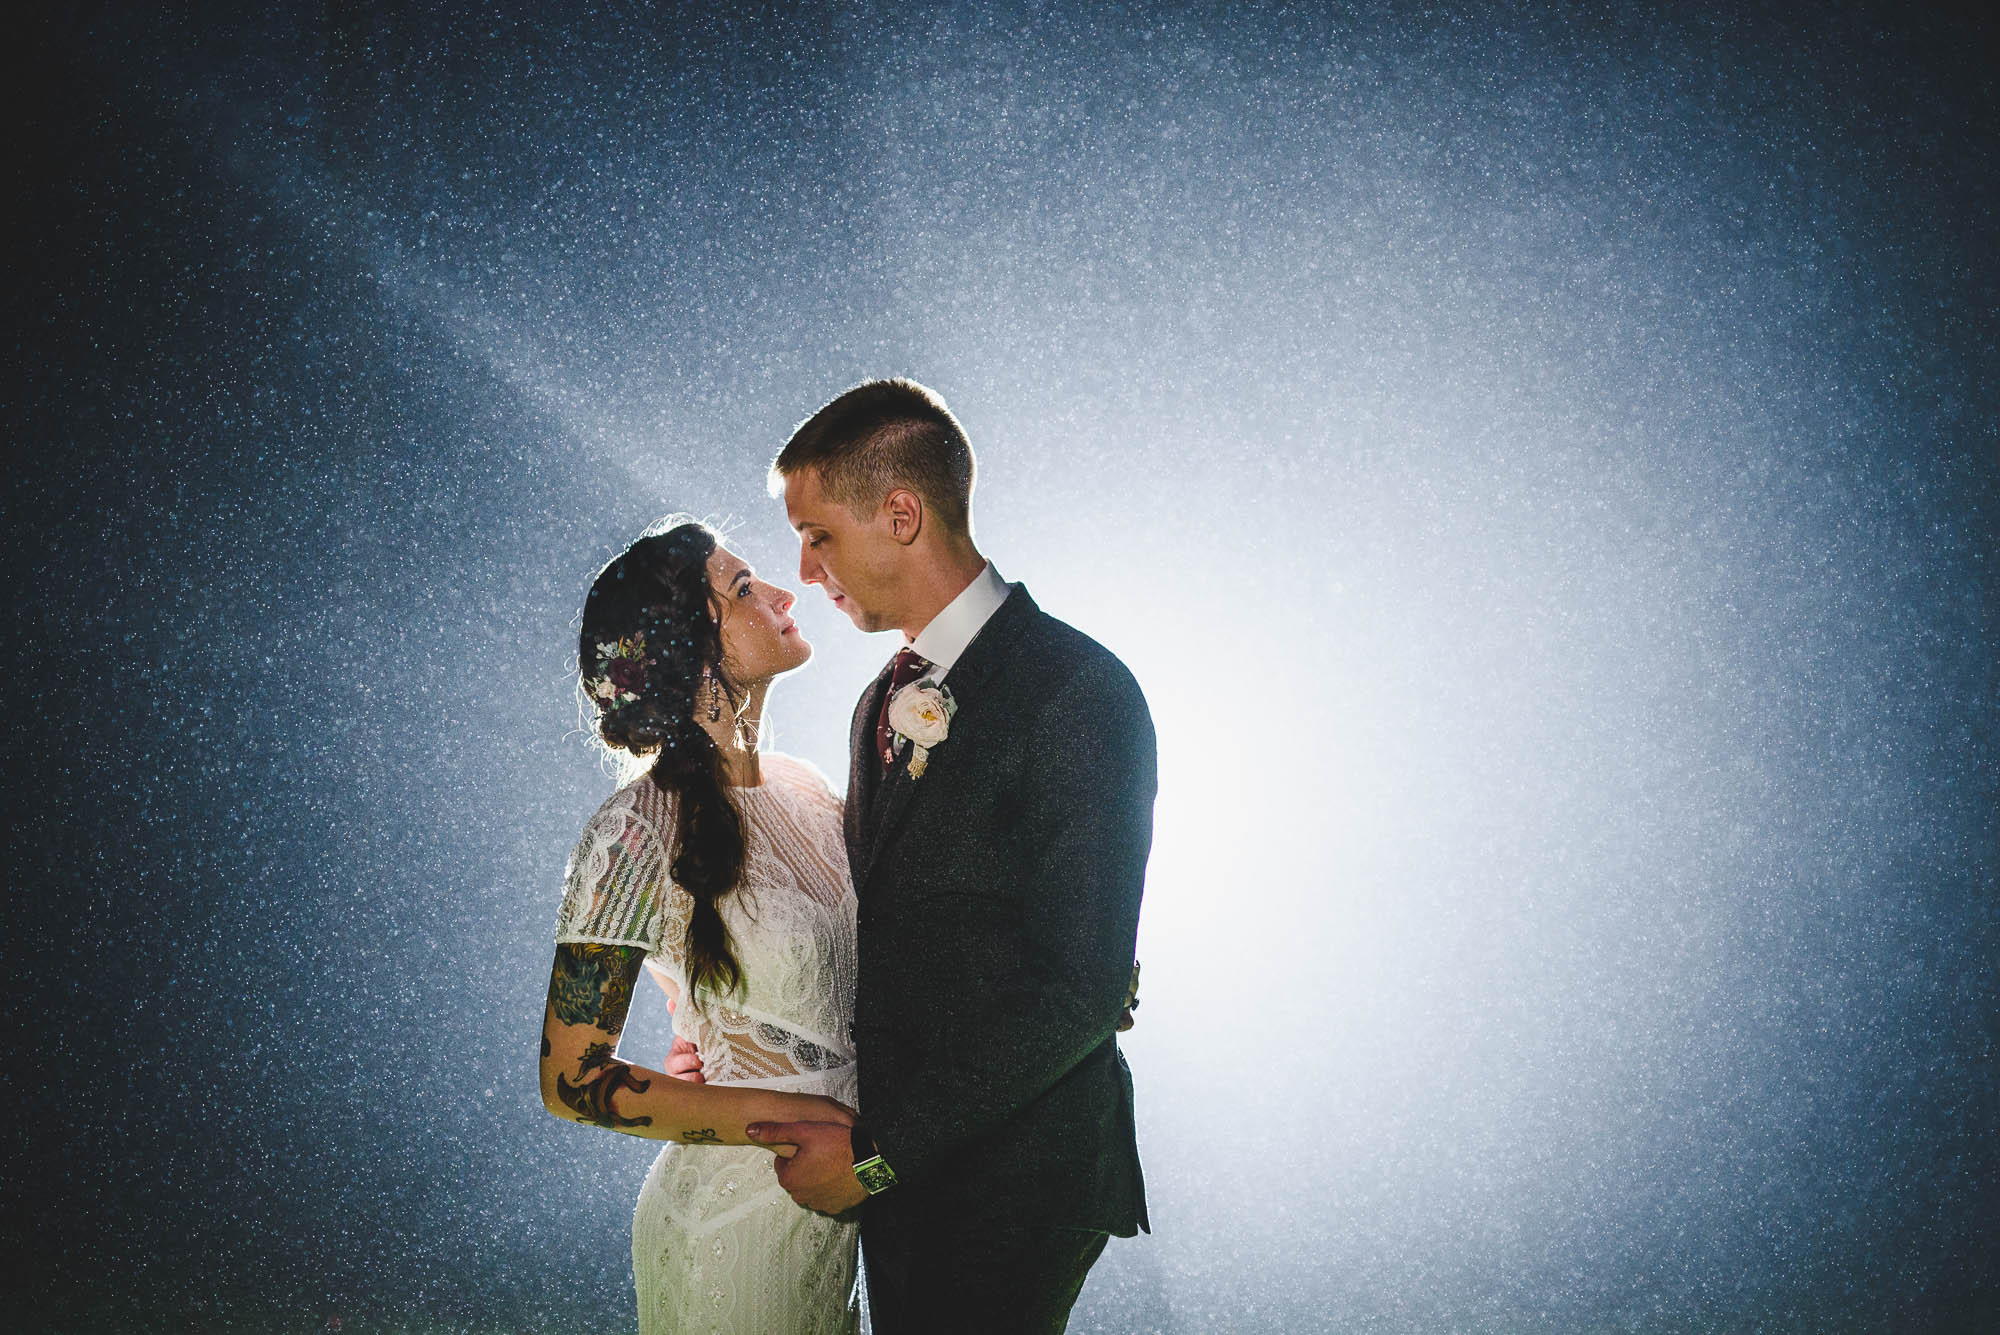 wedding photo back lighting